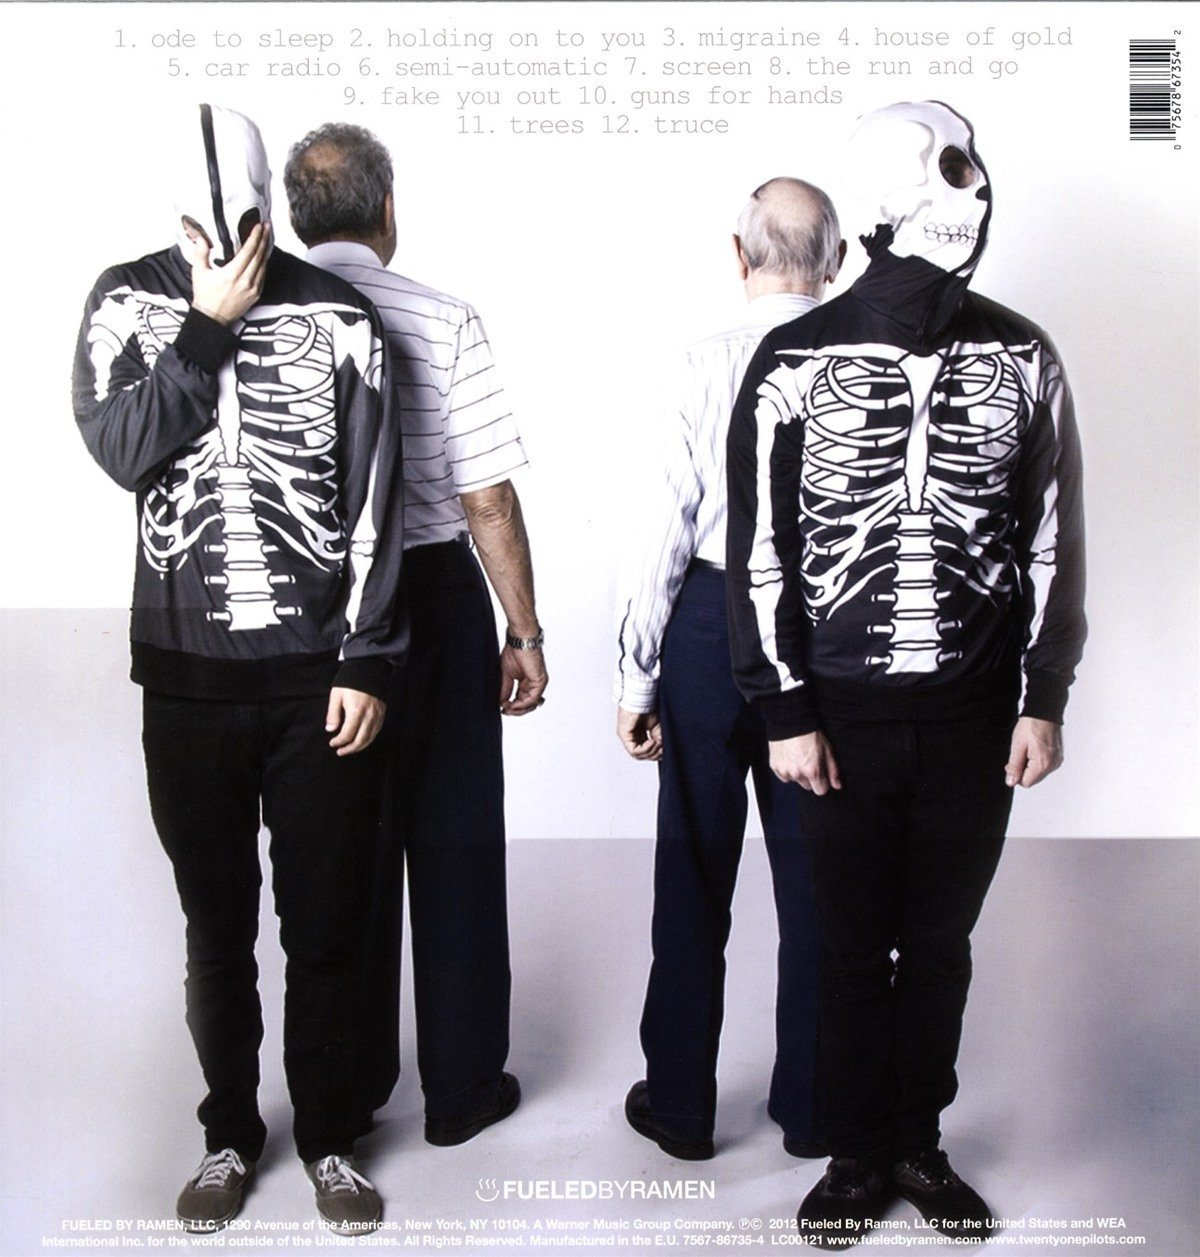 Vessel (Clear Colored Vinyl w/Digital Download) by Fueled By Ramen (Image #2)